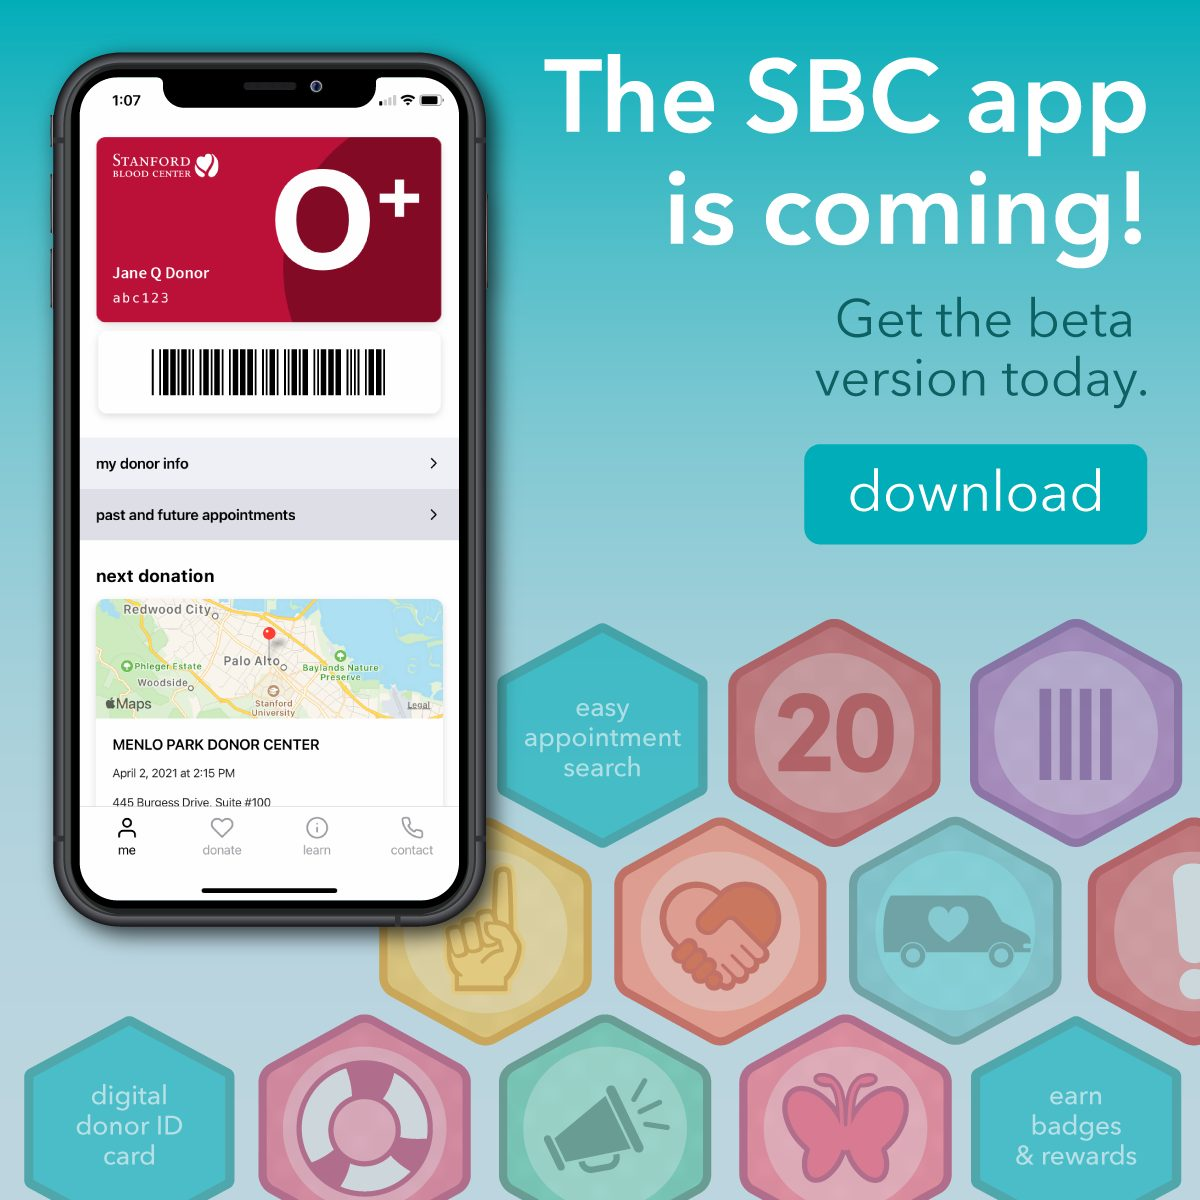 Download the beta version of the SBC app